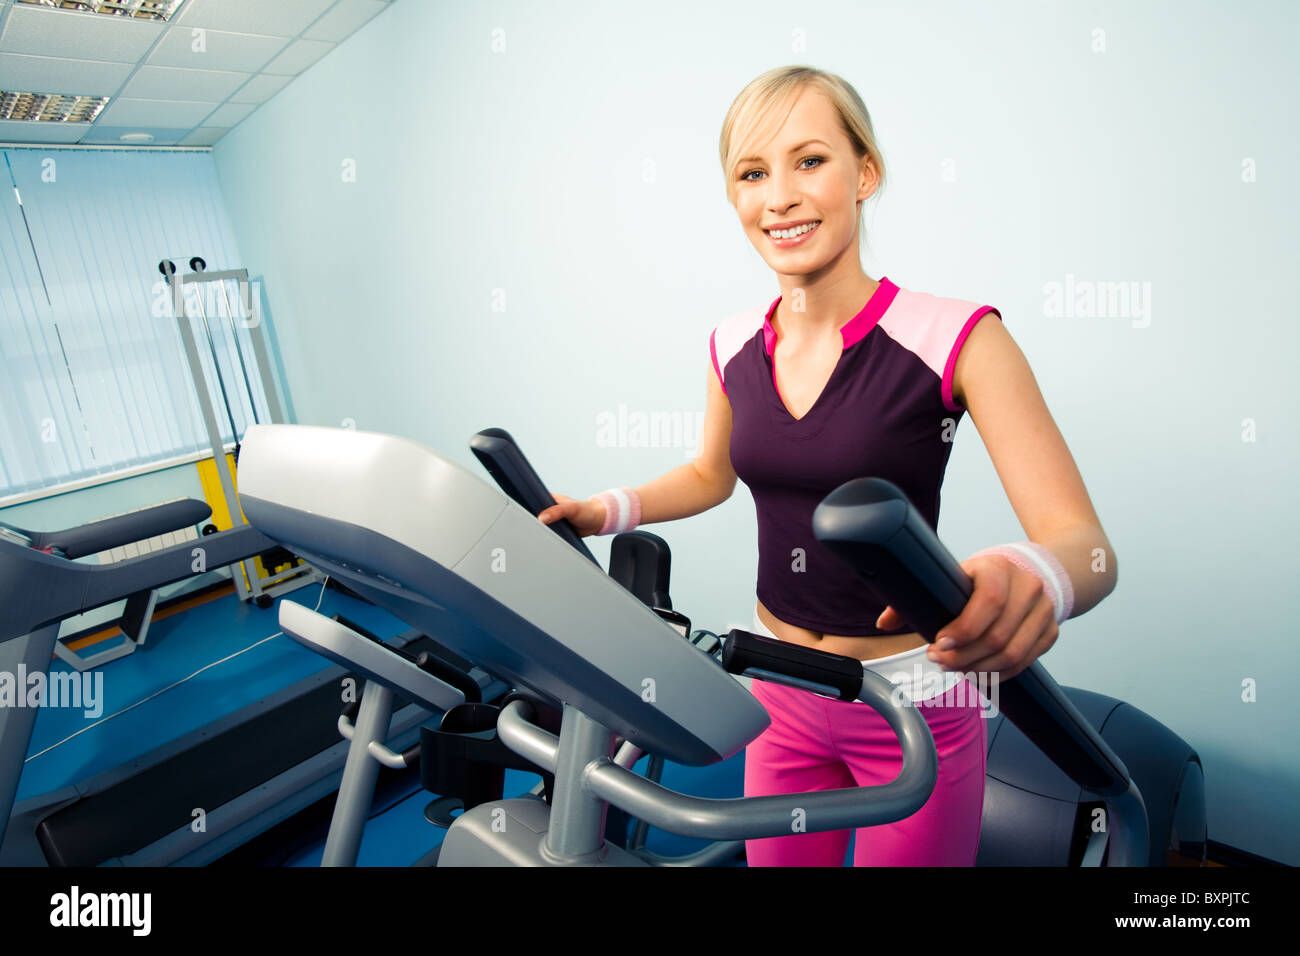 Image of pretty girl in sportwear on the treadmill running - Stock Photo